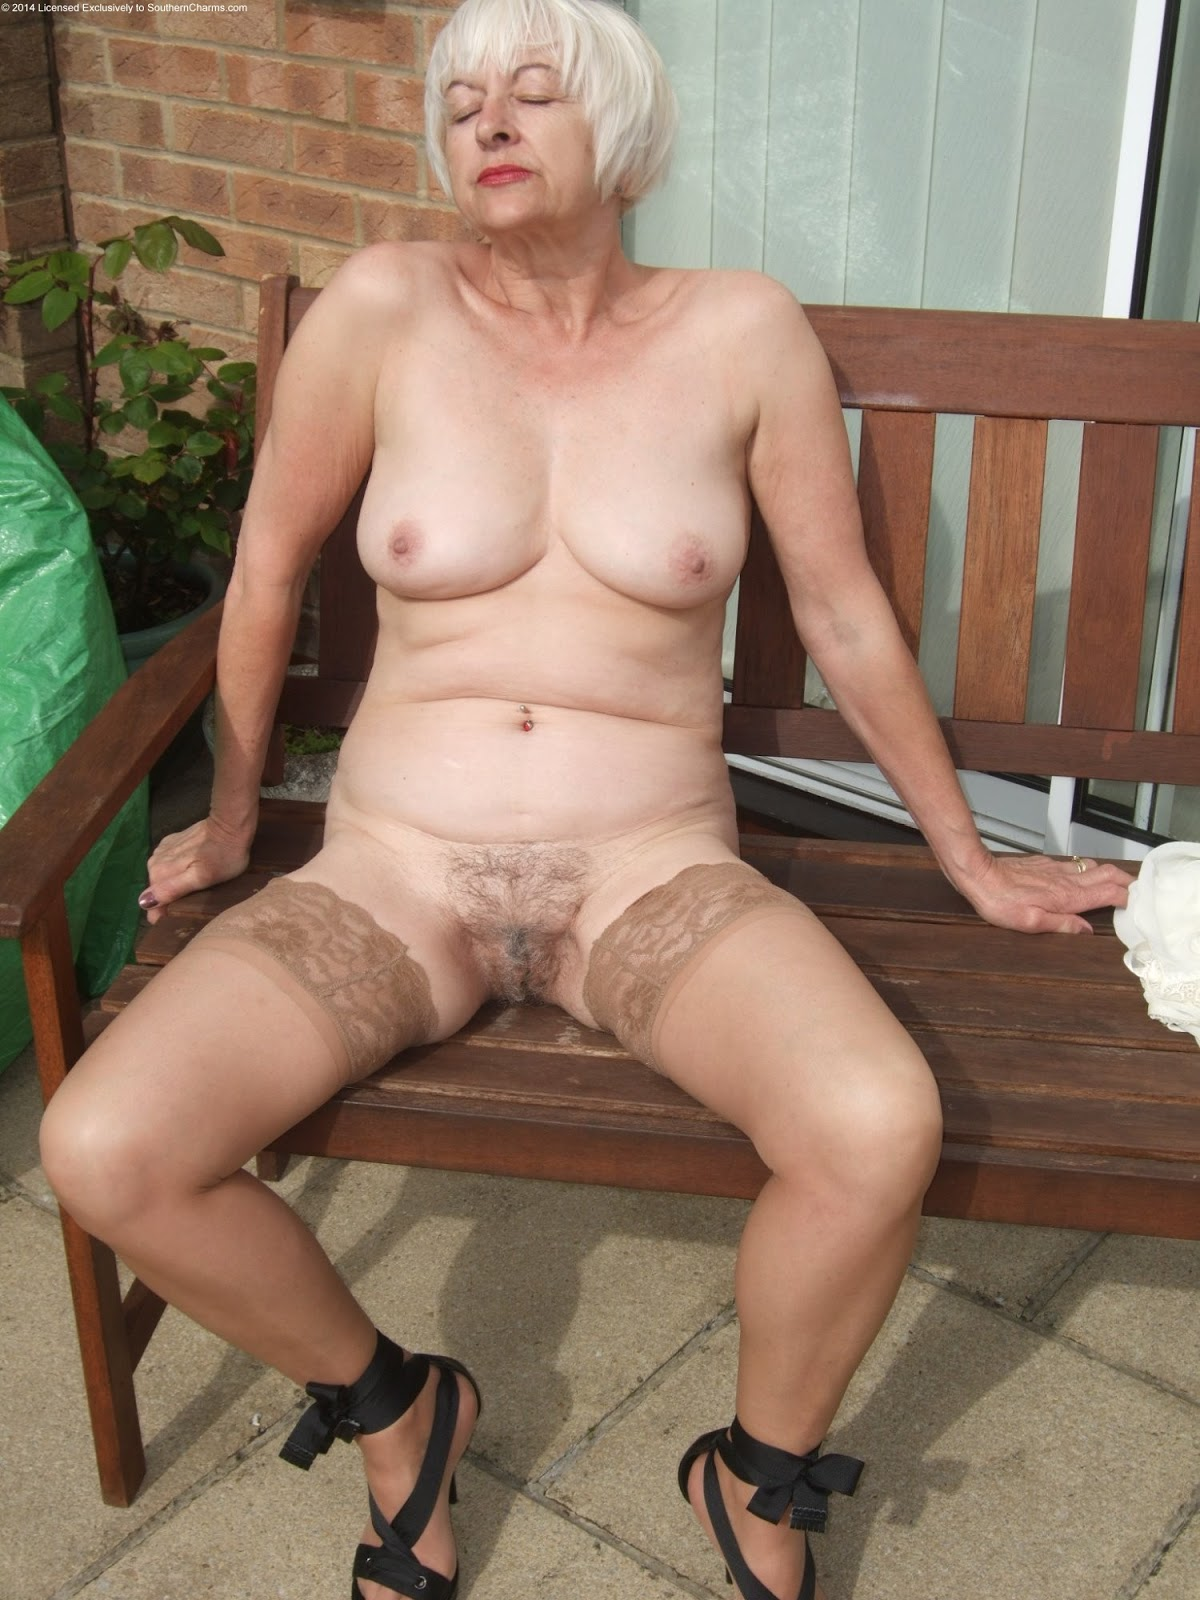 Very Old Naked Women Pics